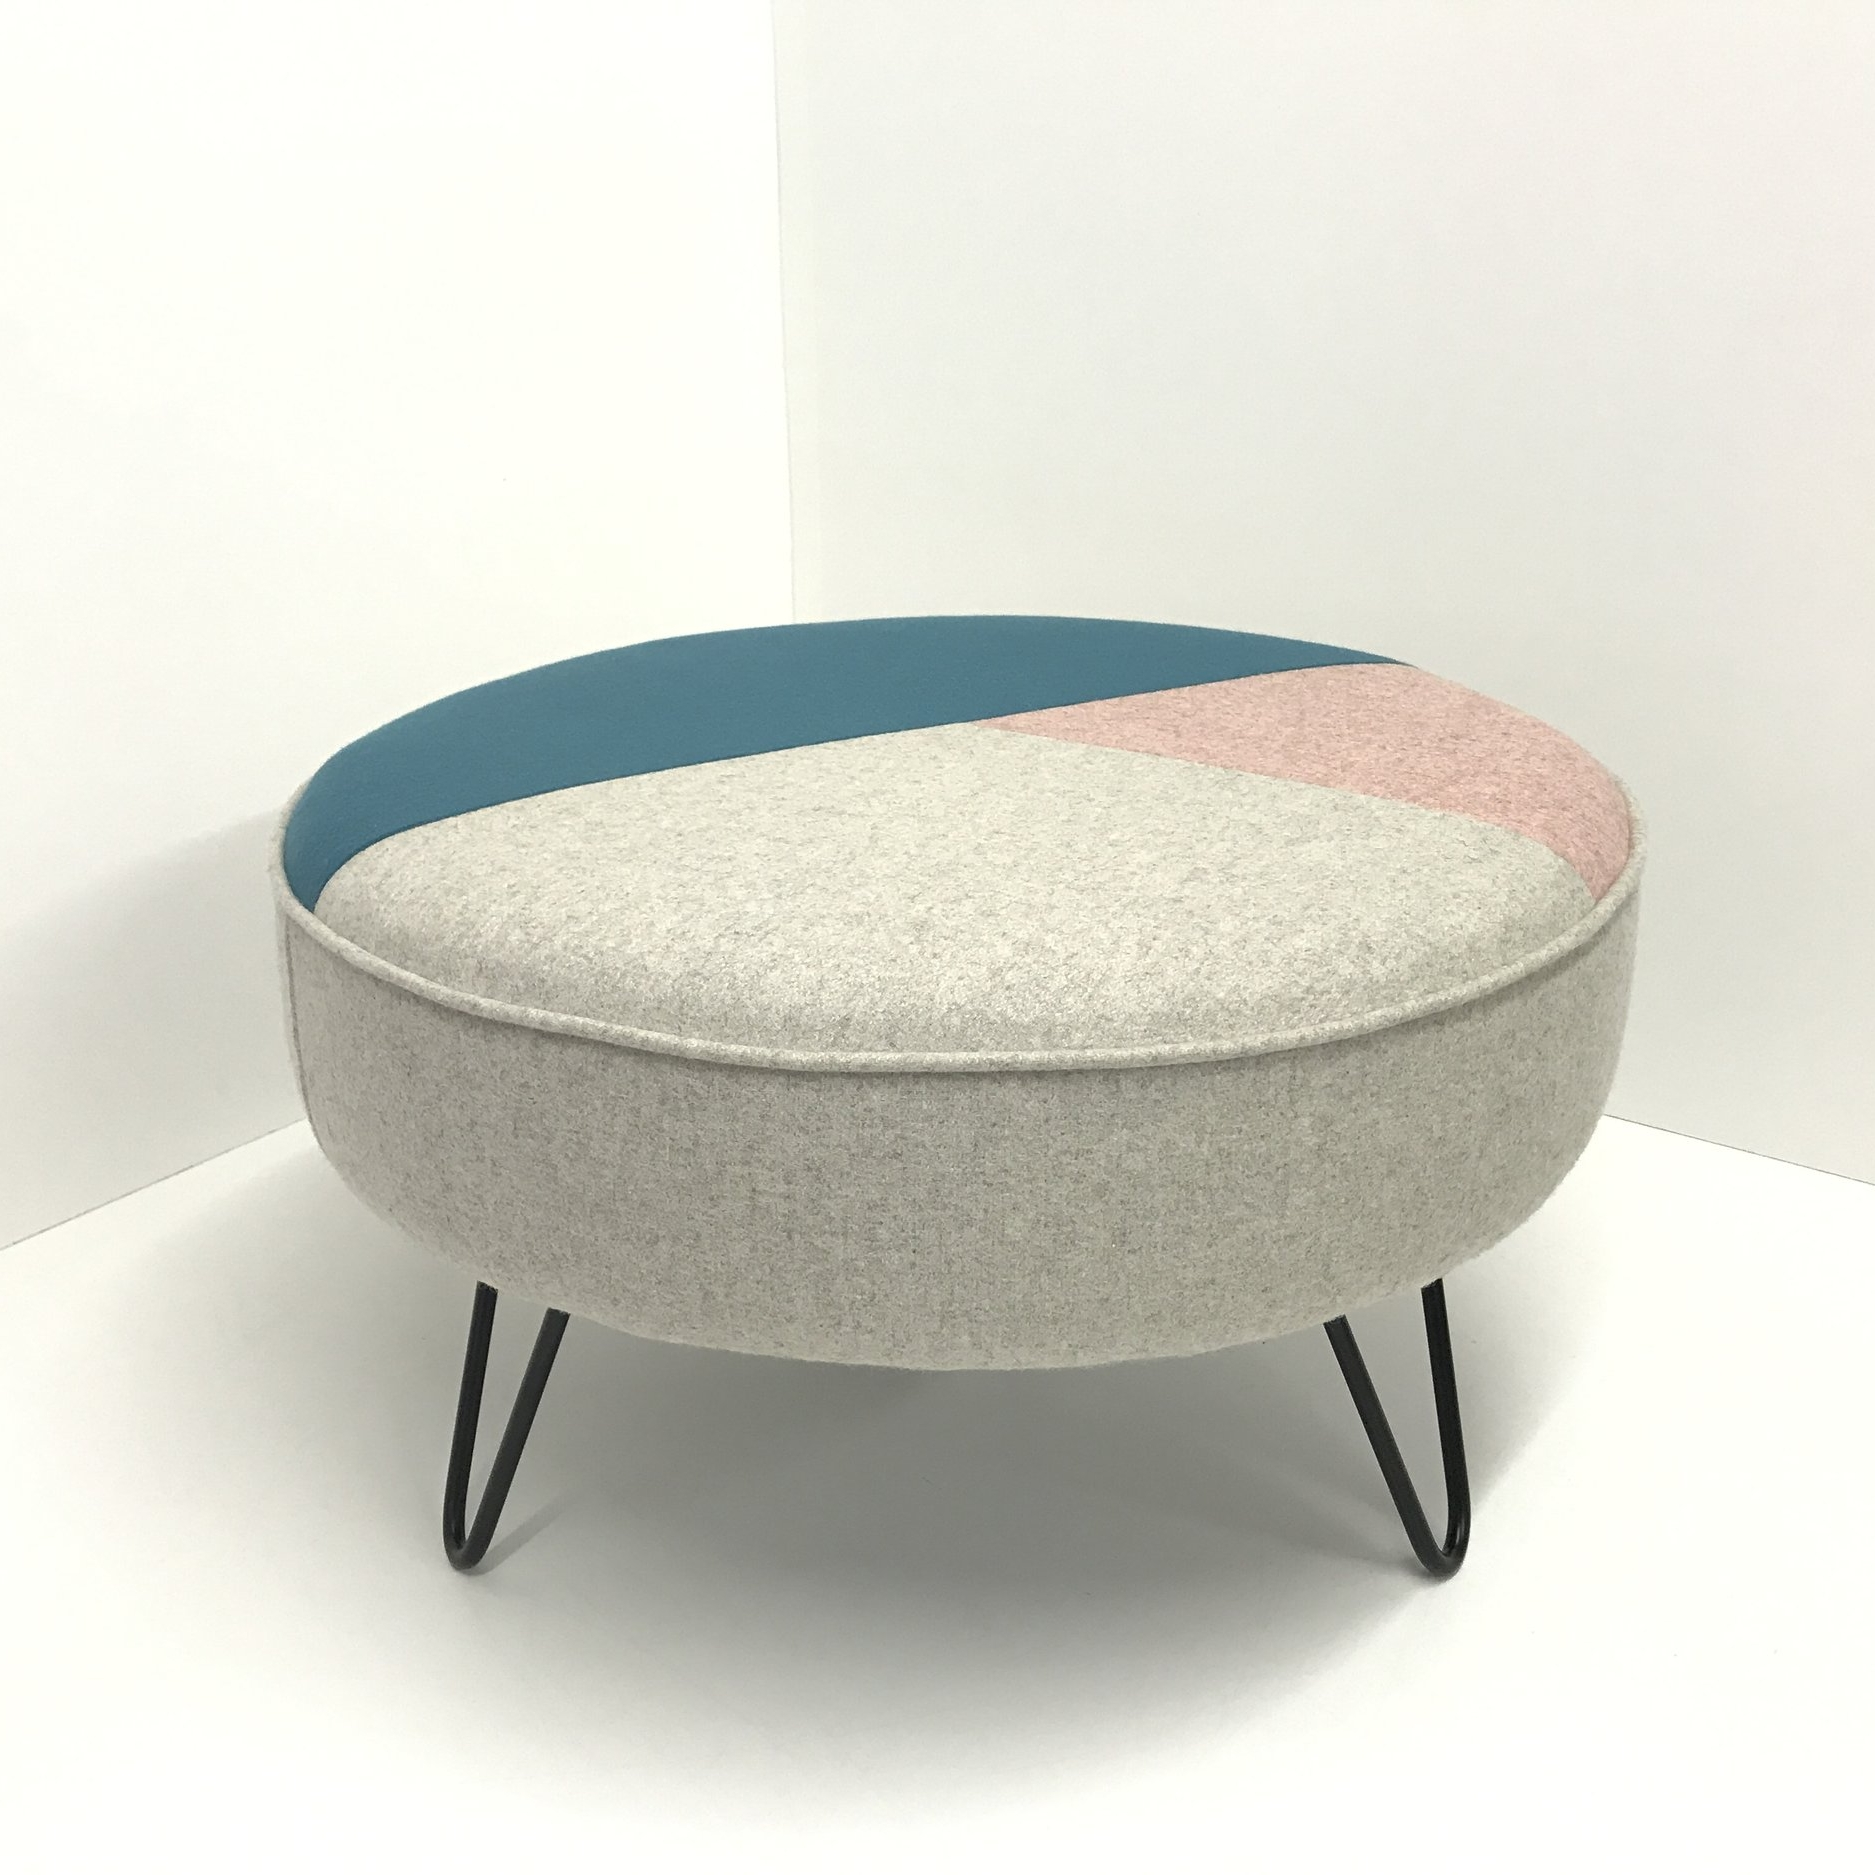 [new] Geometric design footstool  - A new design adding more colour, also with new Black legs